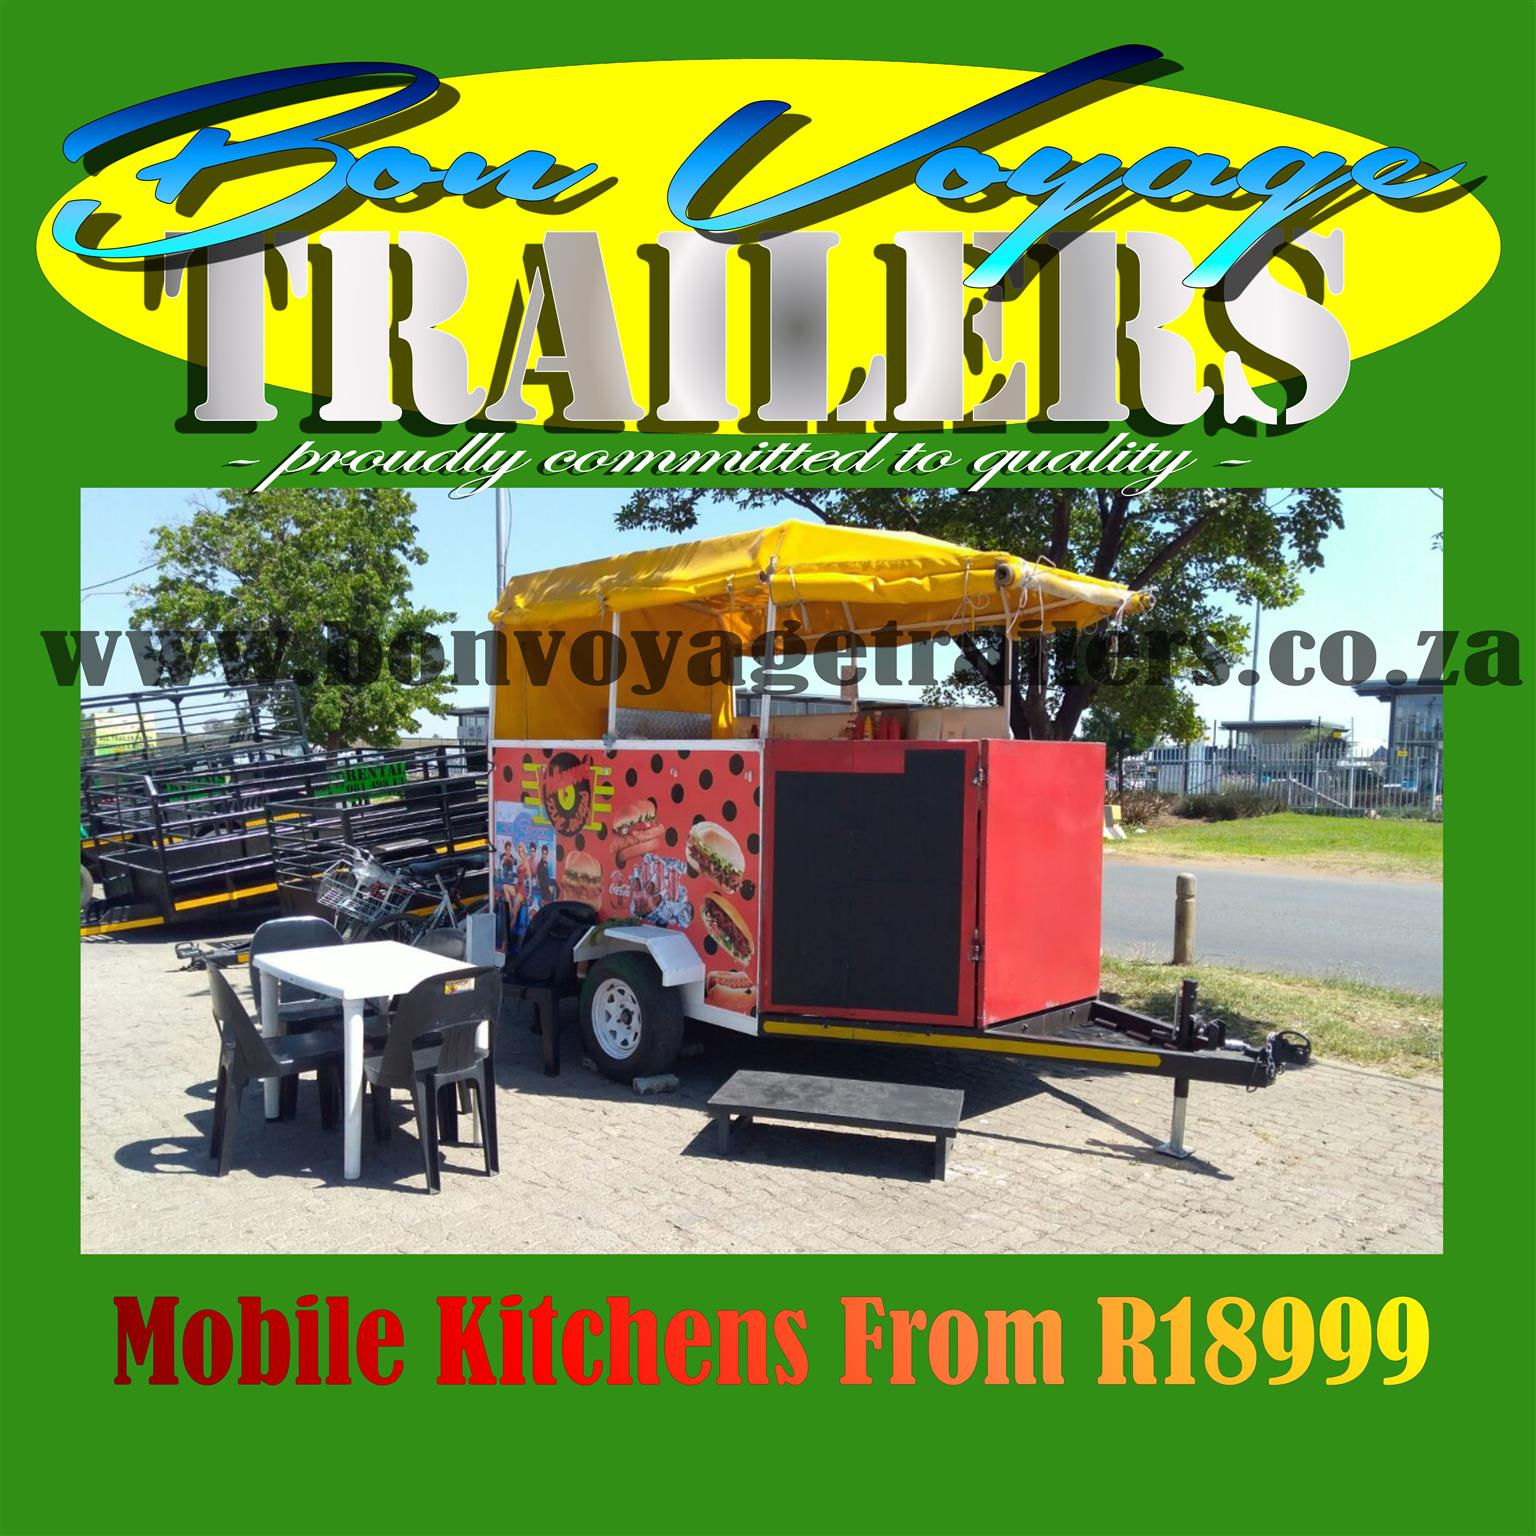 Mobile kitchens from R18999